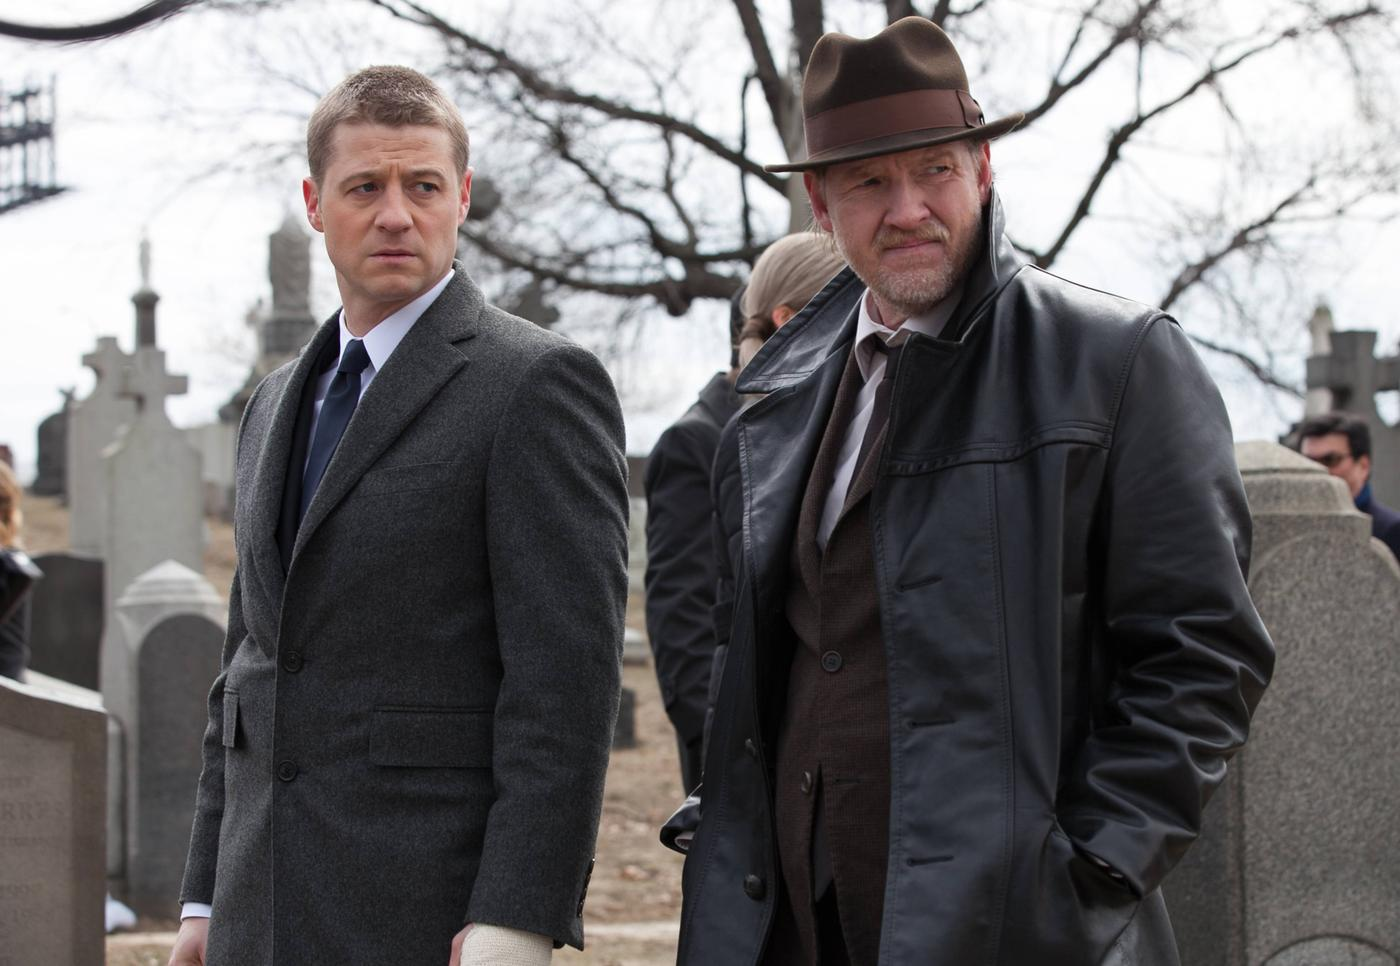 Gotham: 6 reasons we are excited that Ben McKenzie is back on TV